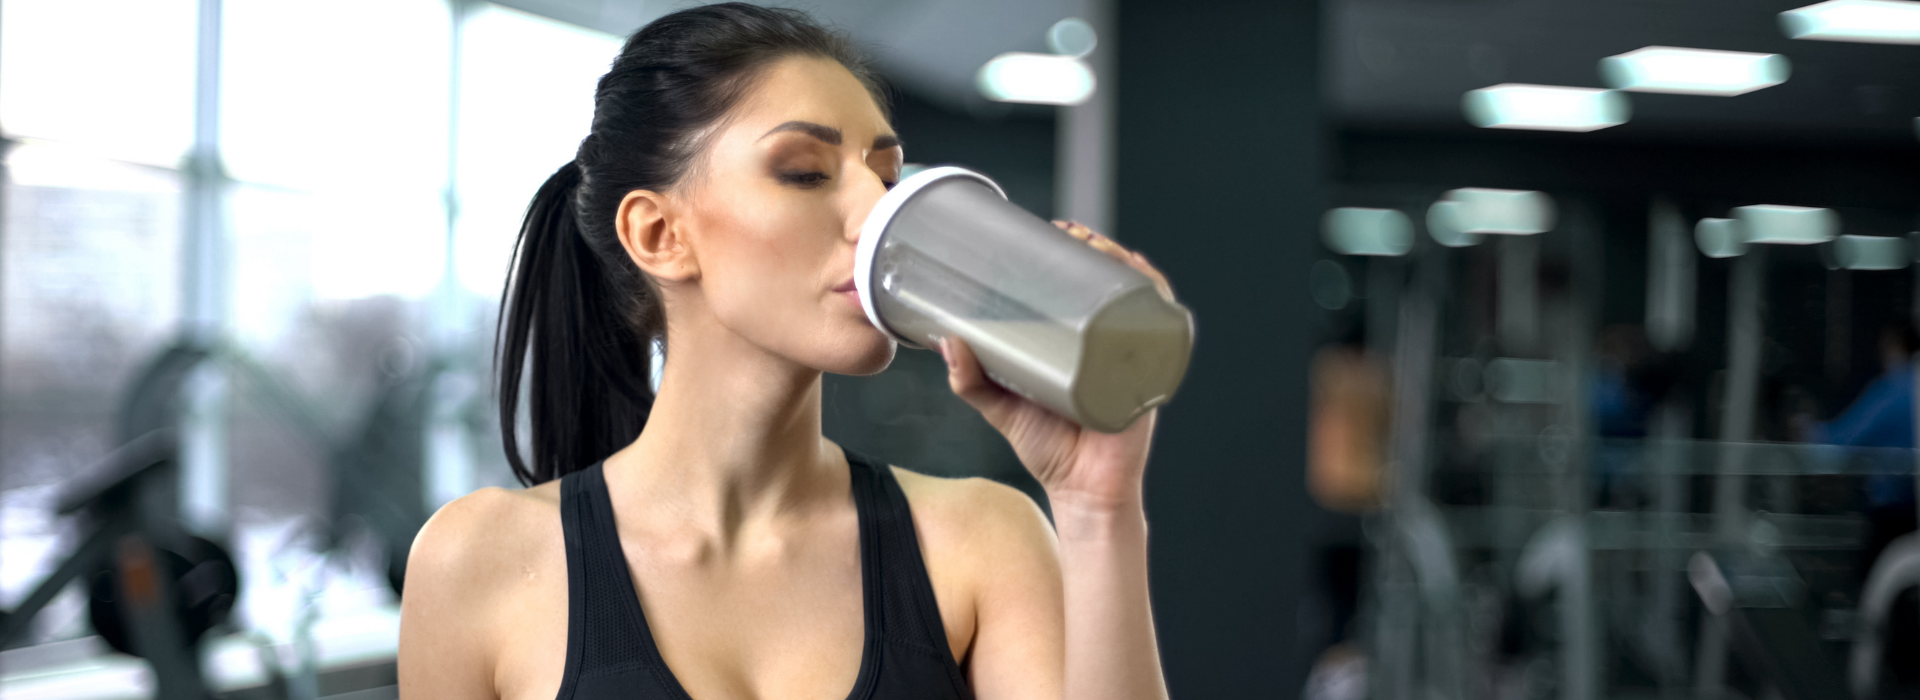 The Important Benefits of Soy Protein